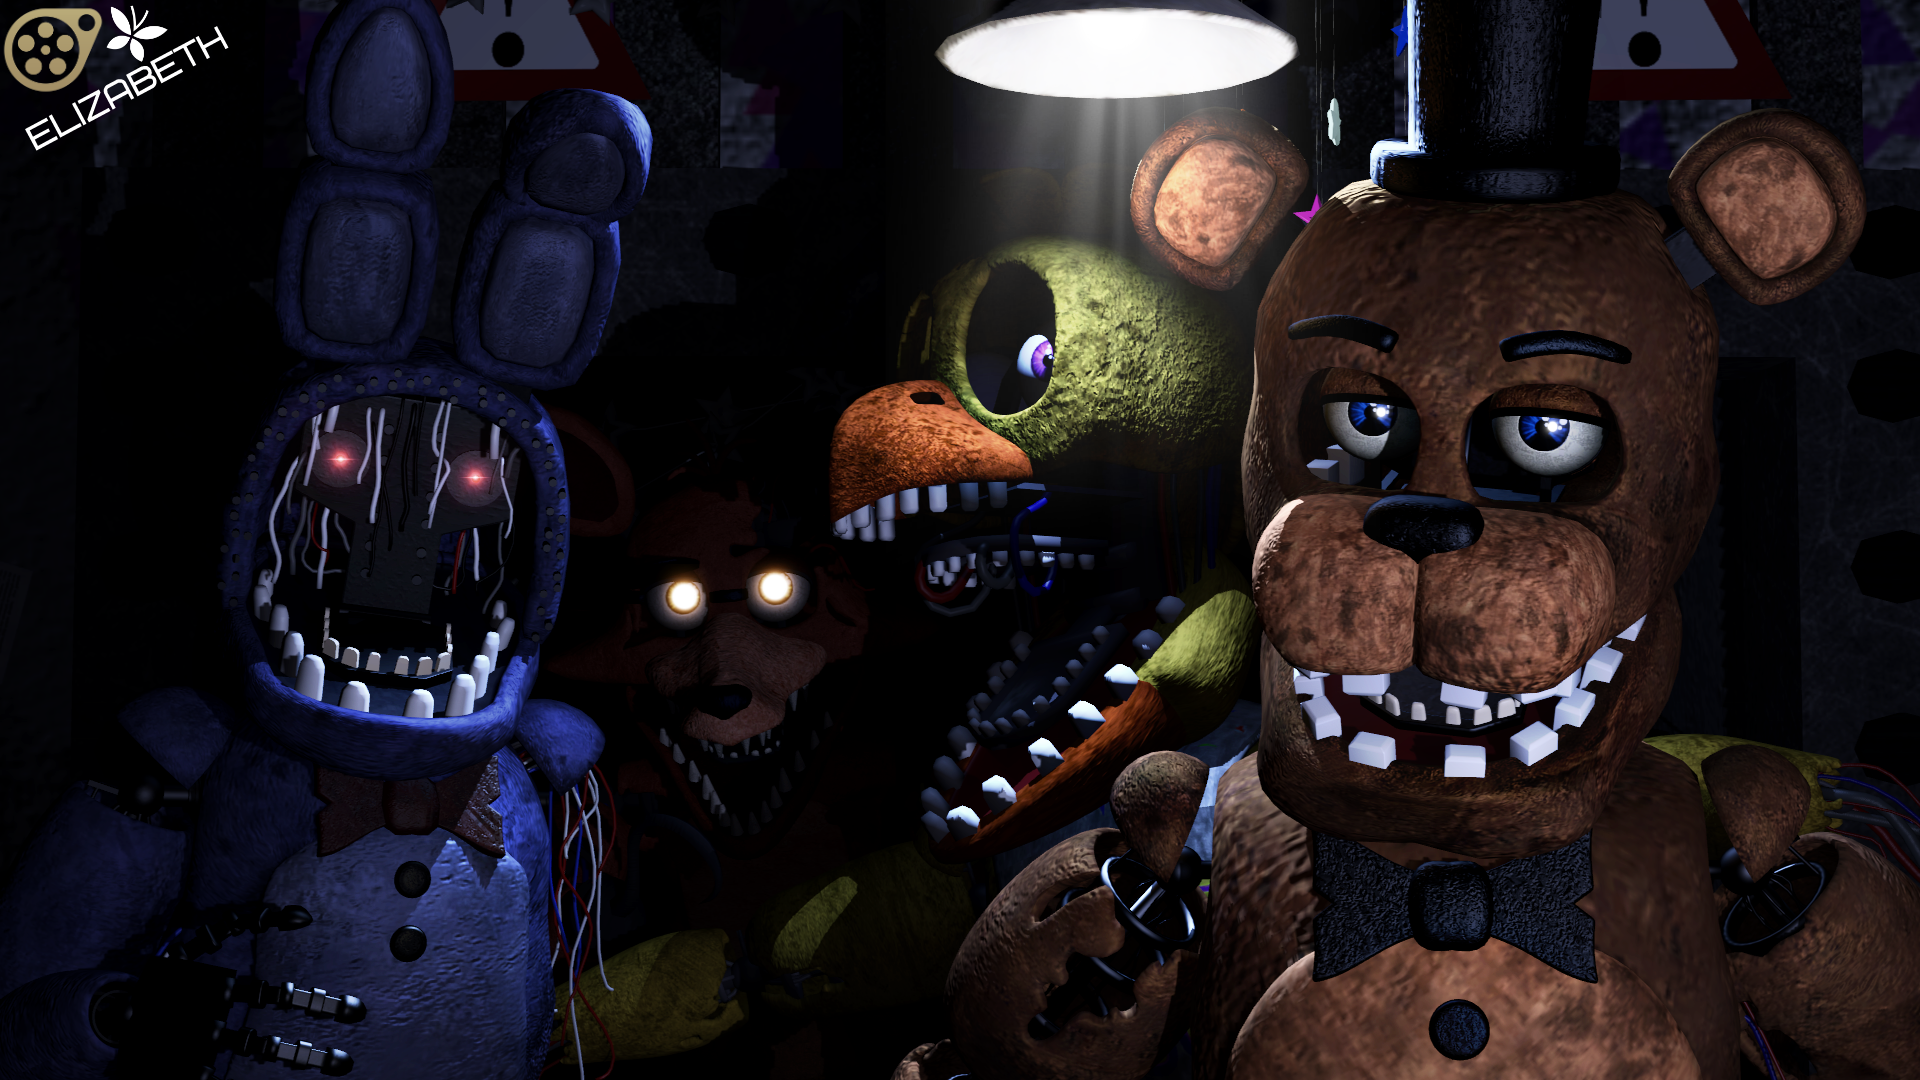 Group of Withered Bonnie Chica